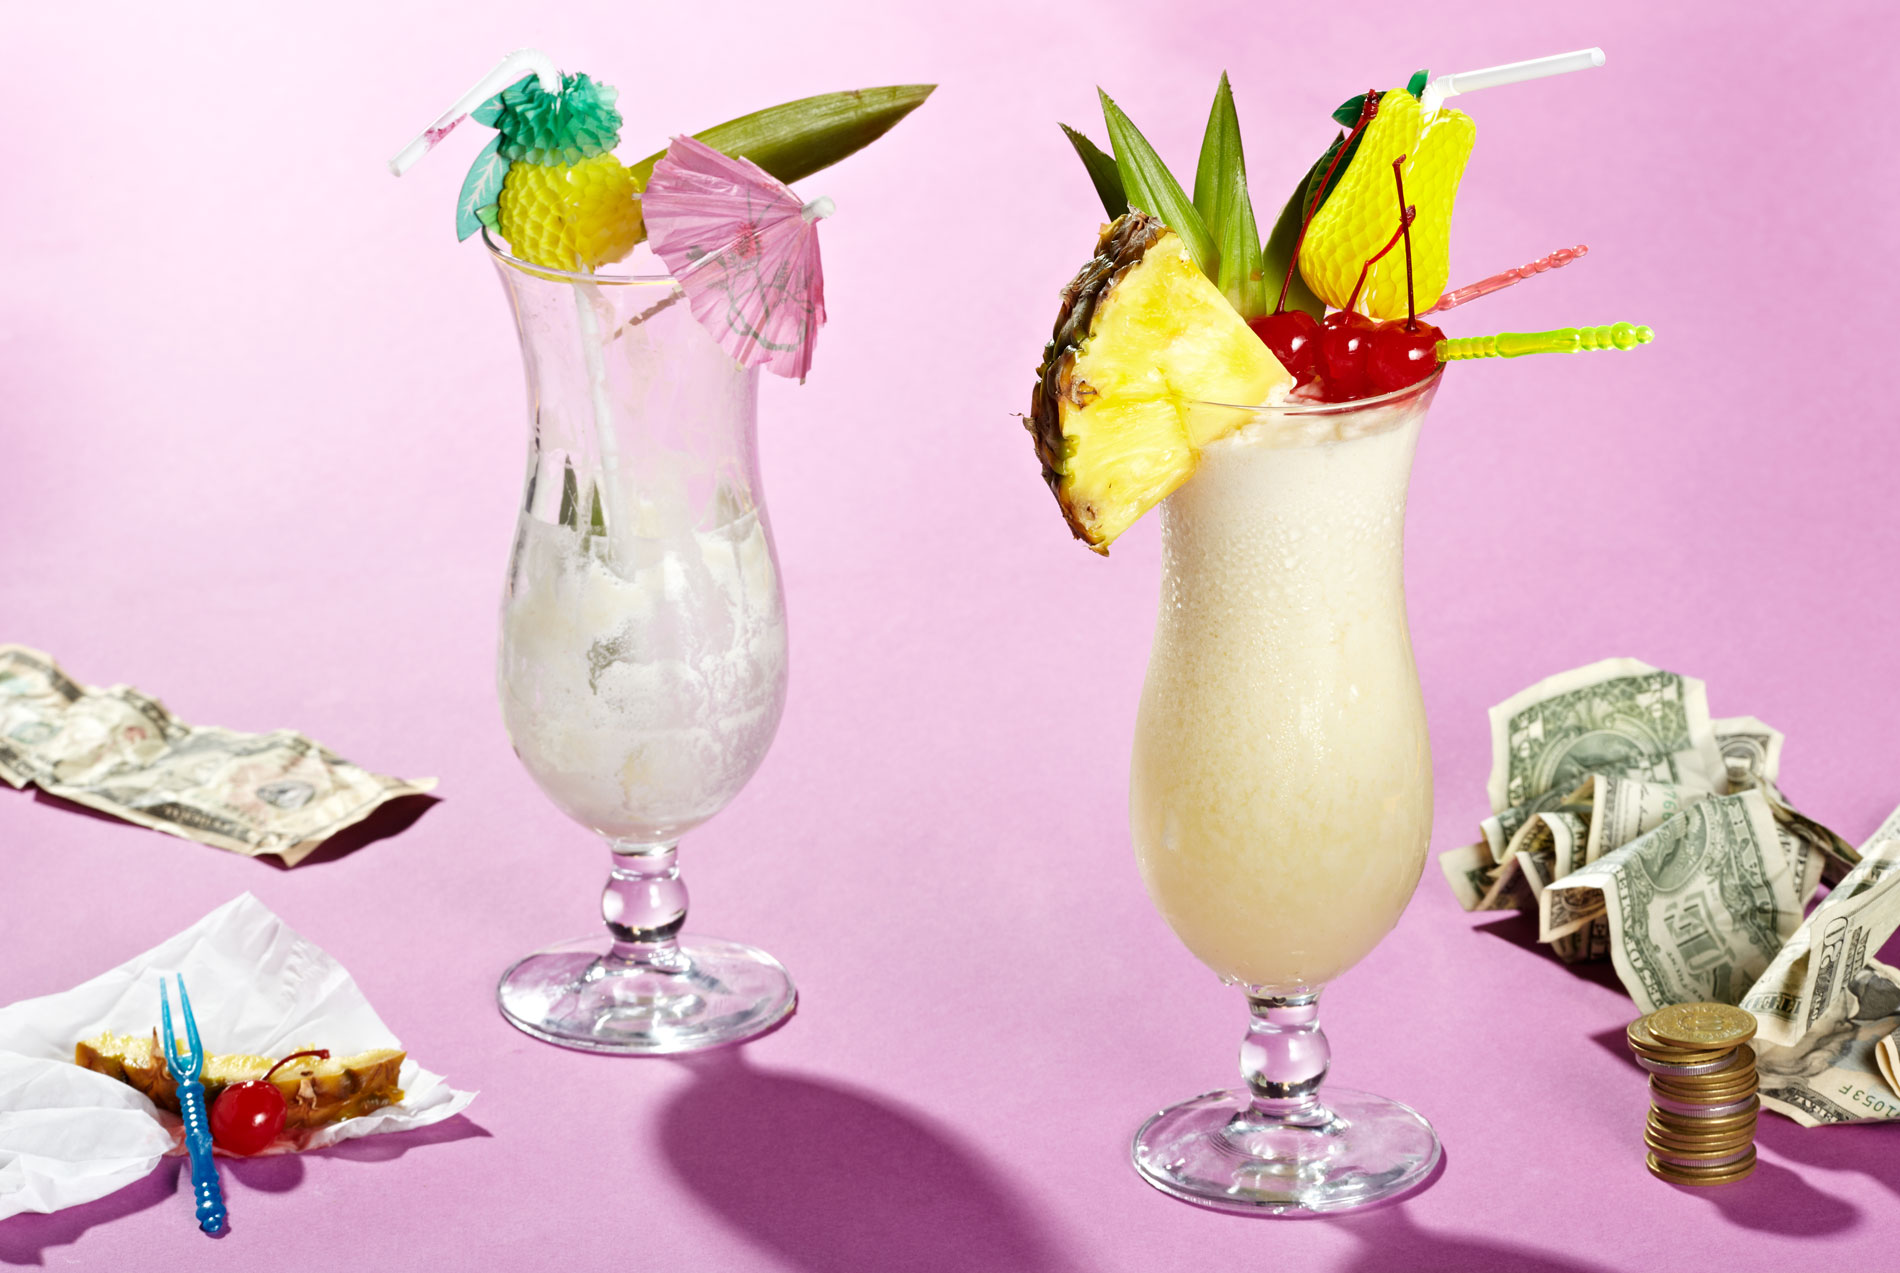 munchies-pina-colada-summer-photoshoot-image